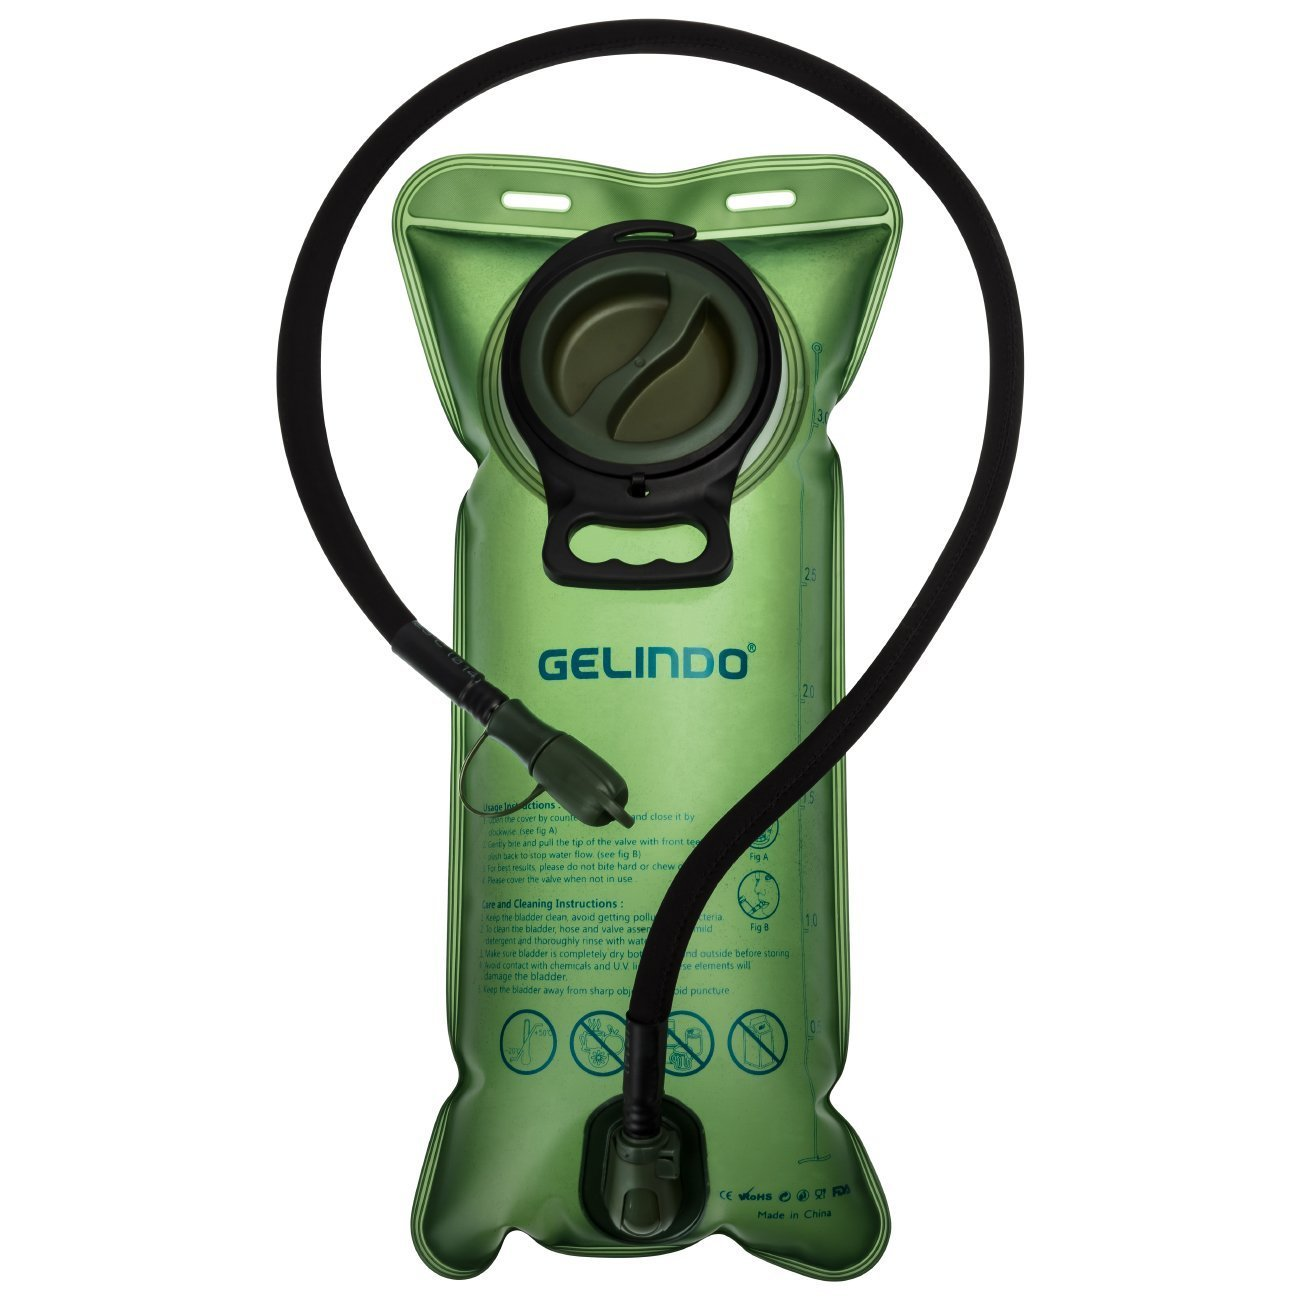 Gelindo Hydration Bladder 3 Liter 100oz, FDA Approved and BPA-Free Hydration Backpack Replacement, Large Opening and Quick Release Insulated Tube with Shutoff Valve by Gelindo